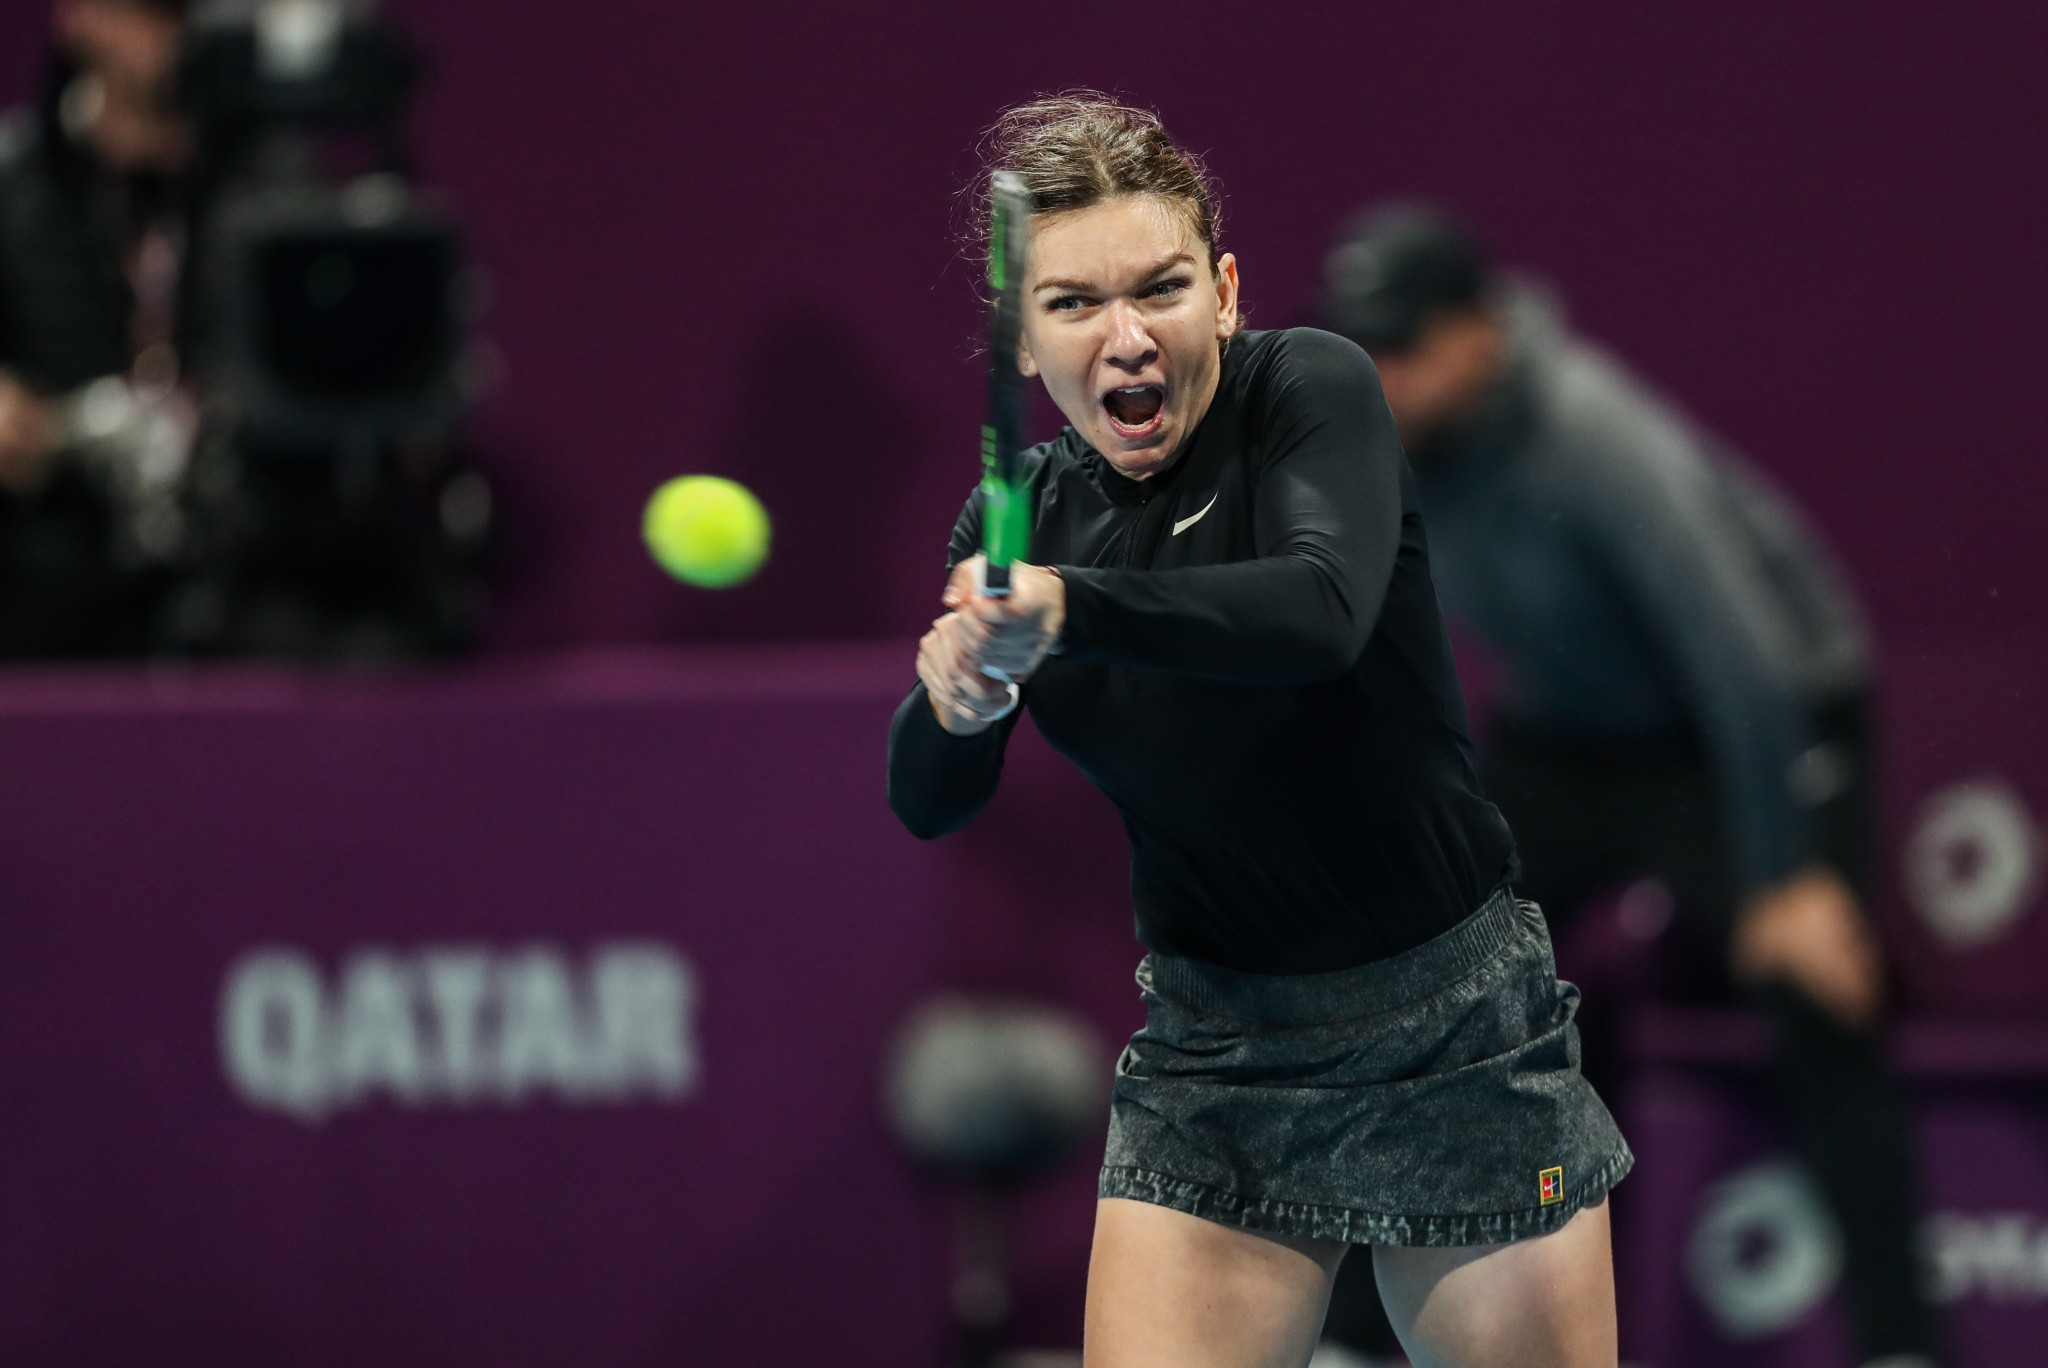 Romania's Simona Halep won her quarter-final at the WTA Qatar Open to progress to the semi-final ©Getty Images